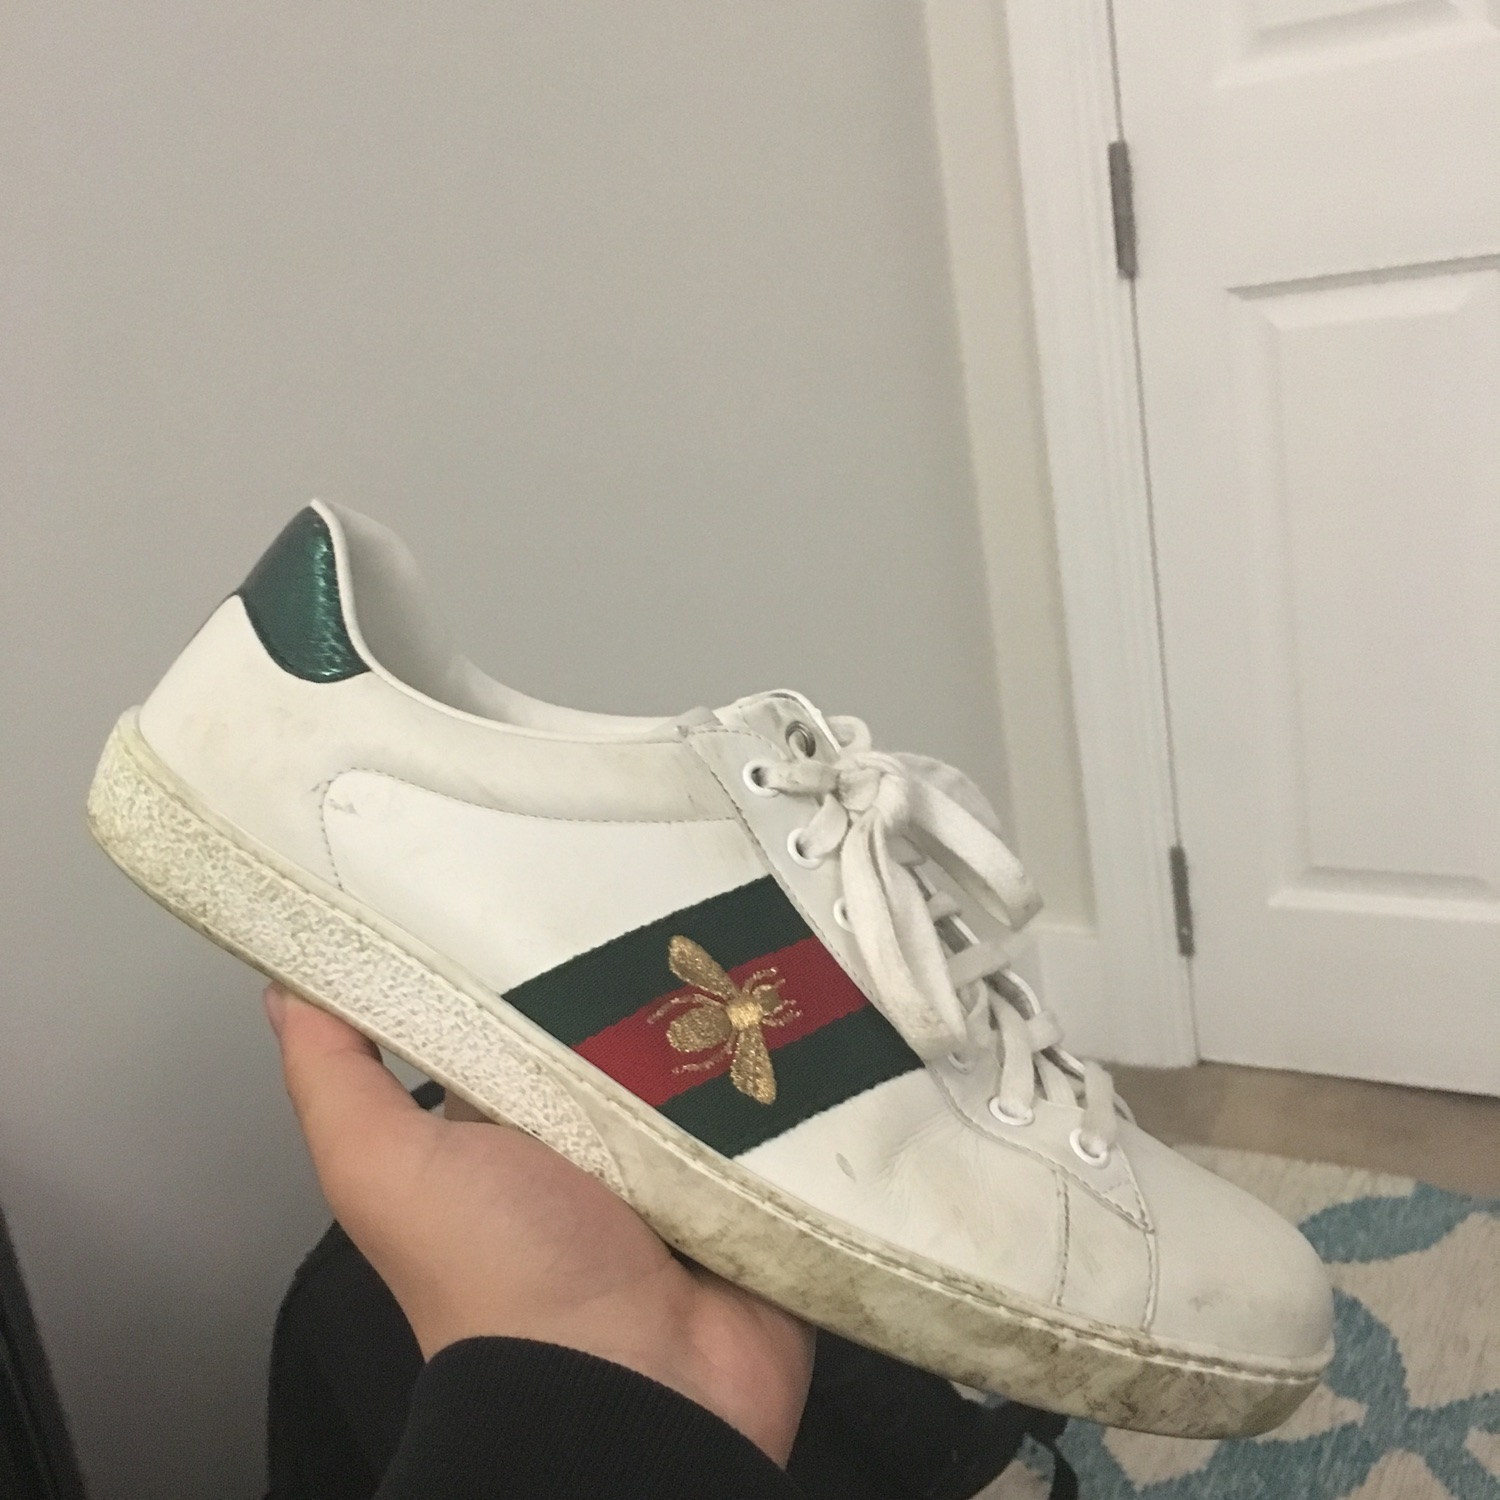 Gucci Ace Sneakers Wasp